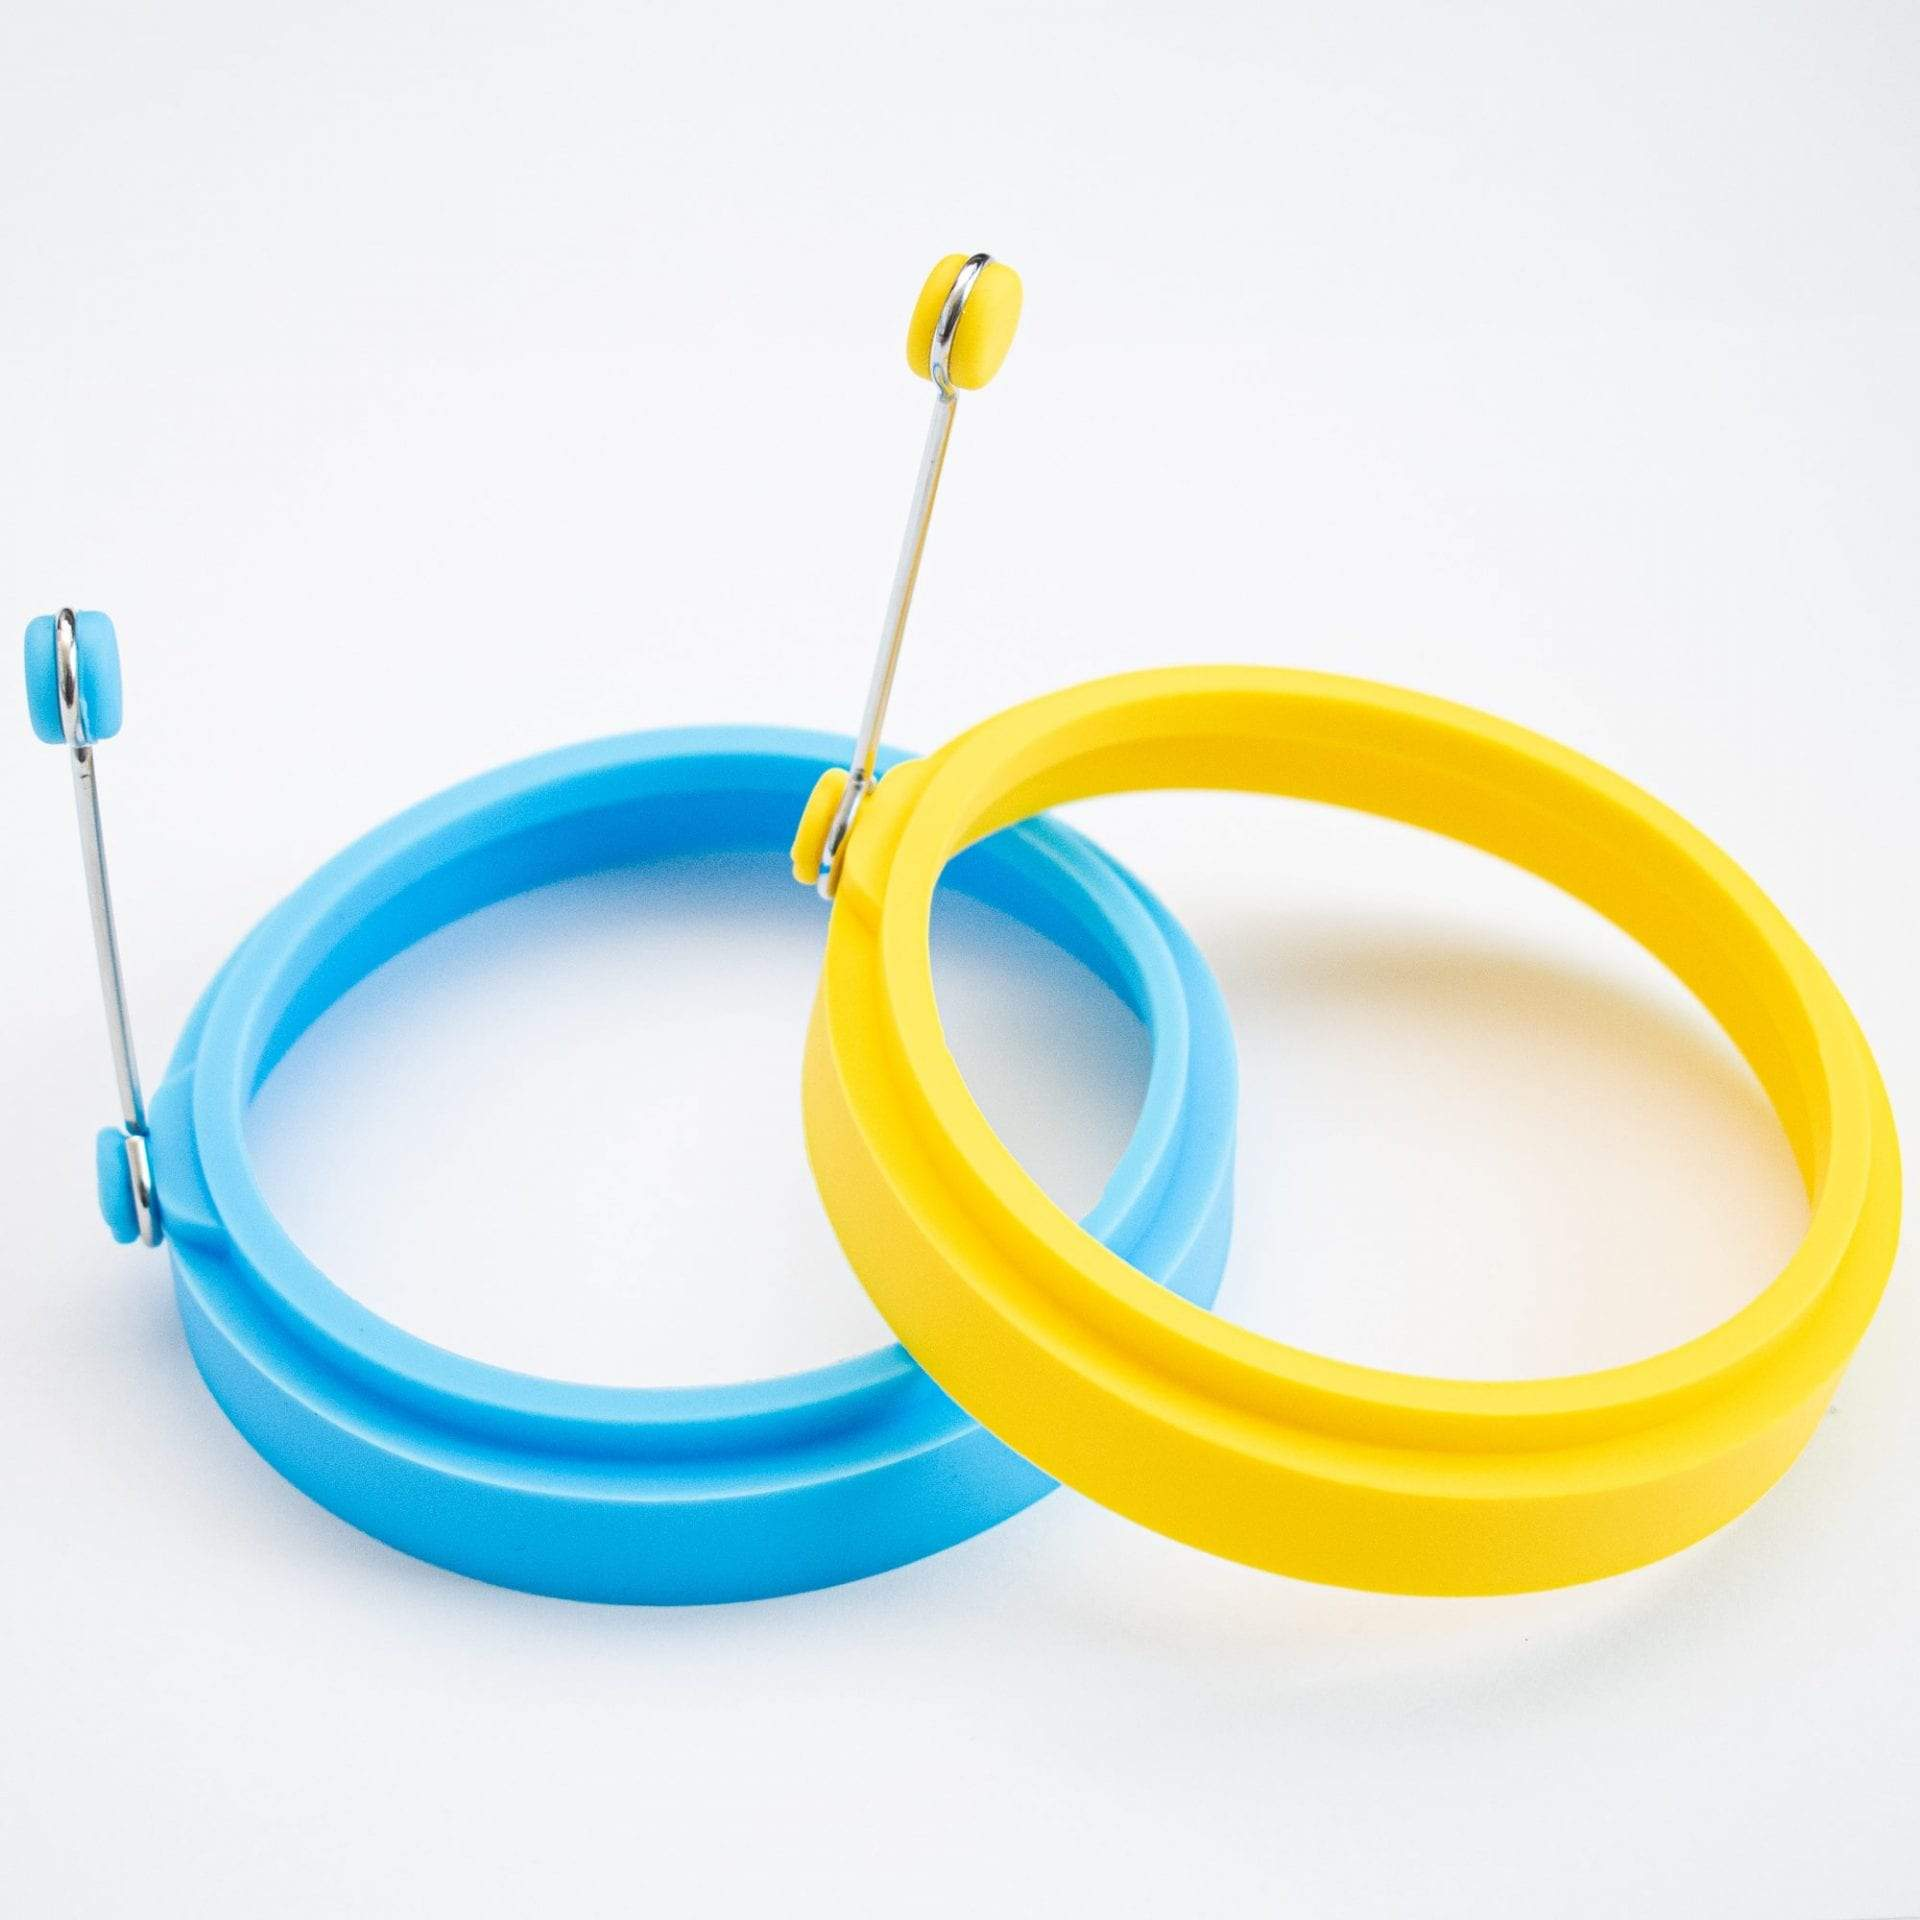 Colorful Silicone Pancake Rings - Pack of 2